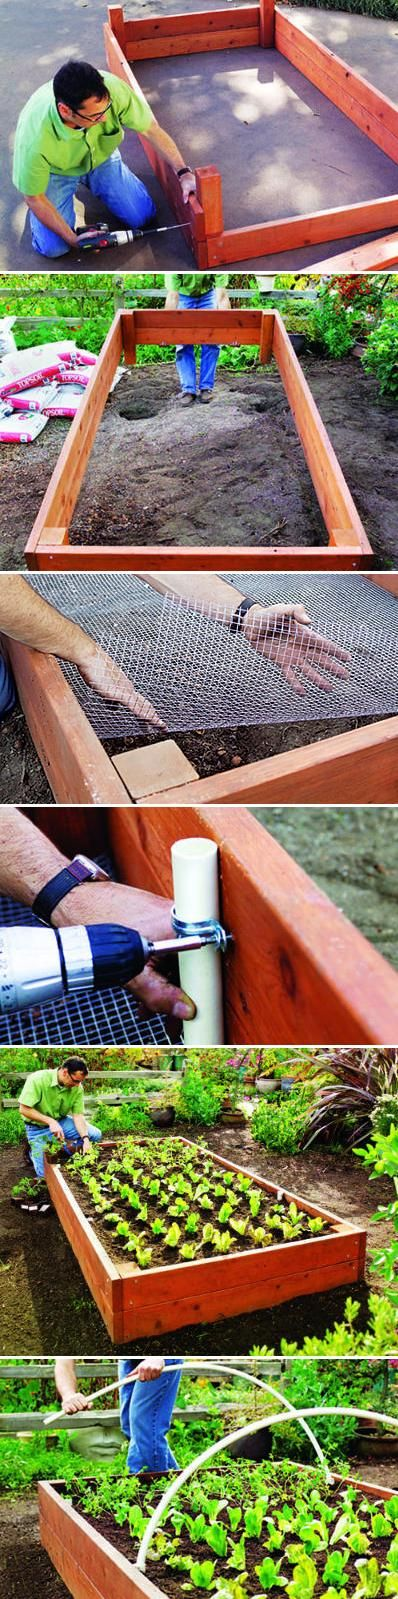 building a perfect raised bed @Shari Brown Brown Brown Brown Burkey @Amber Sweaza Would be great for gardening!: